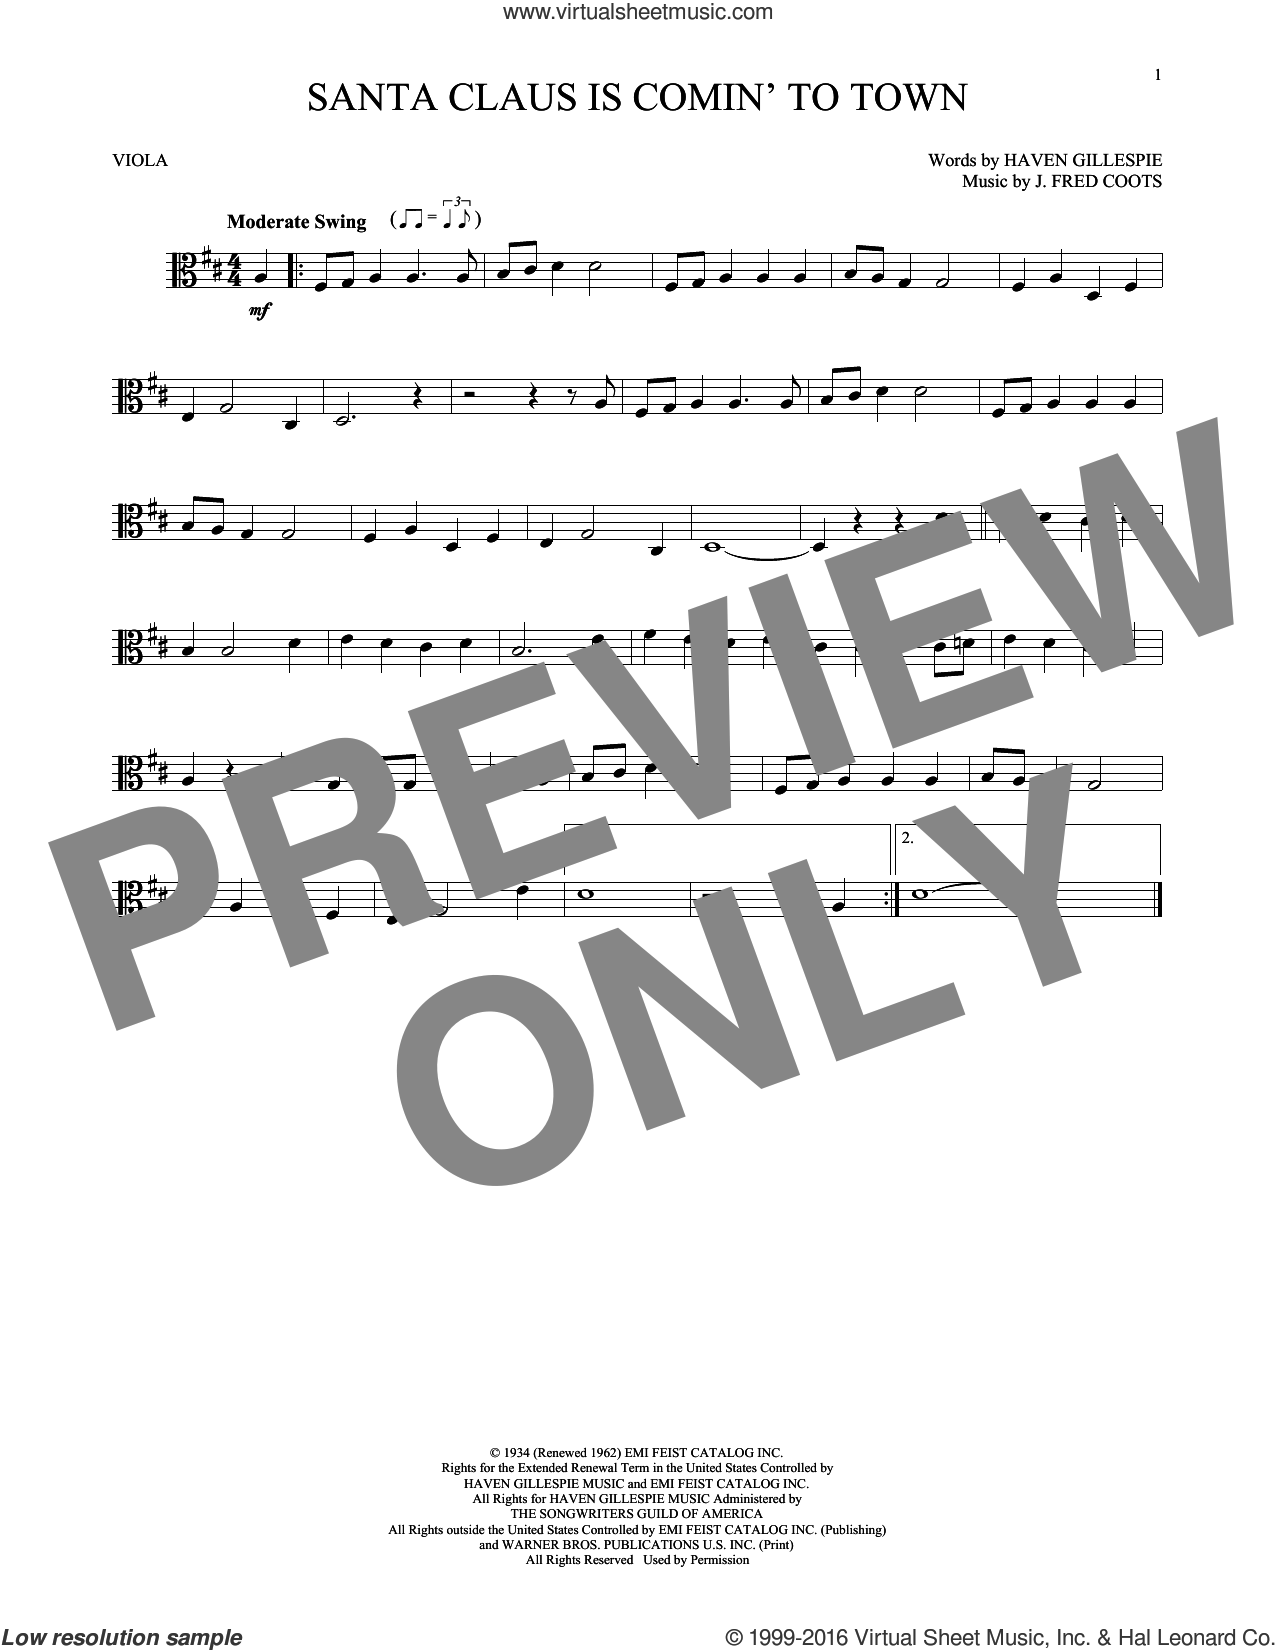 Santa Claus Is Comin' To Town sheet music for viola solo by J. Fred Coots and Haven Gillespie, intermediate skill level